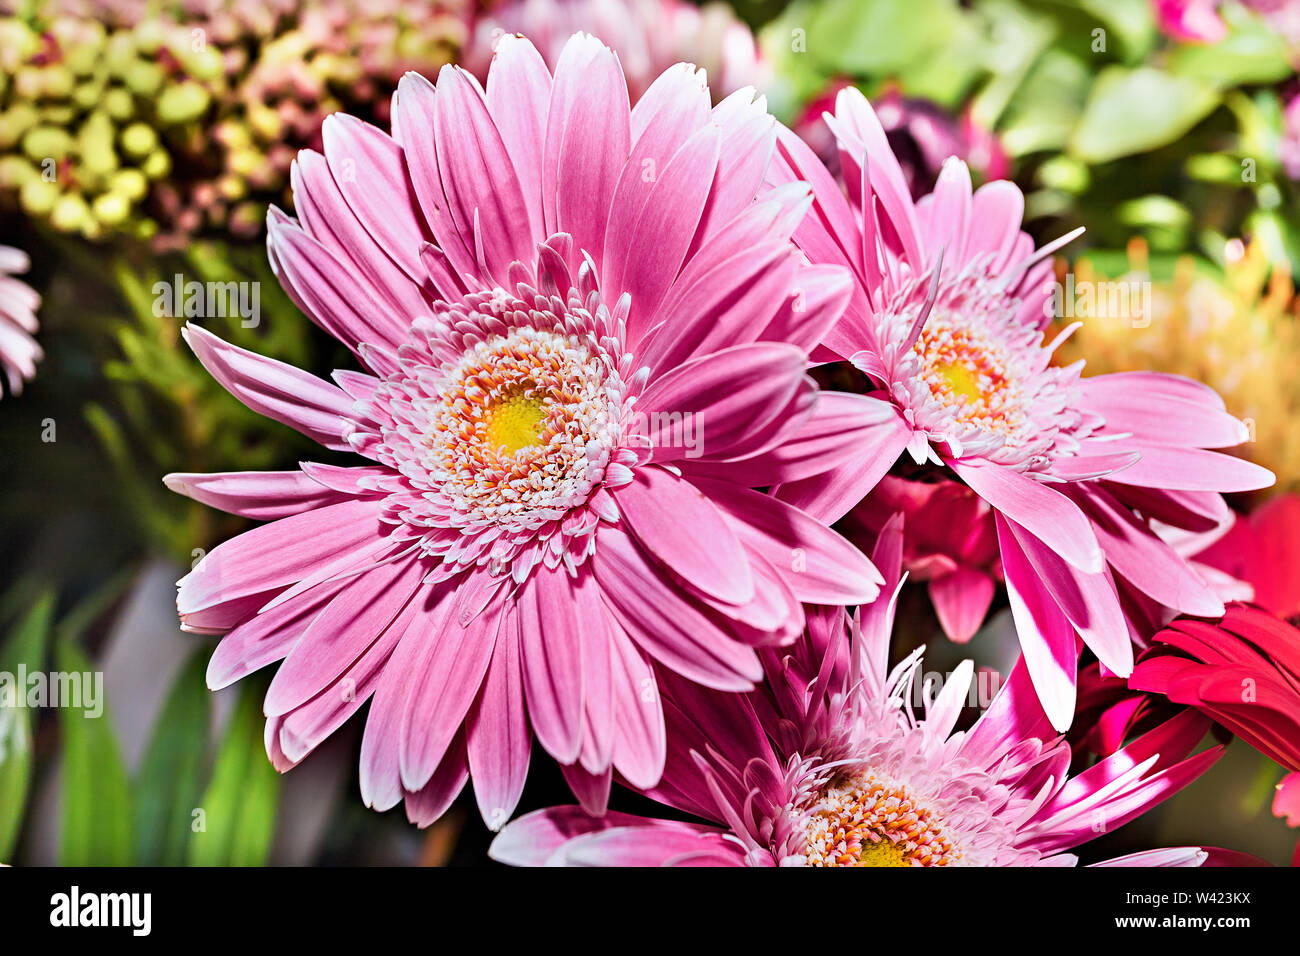 Pink gerberas flowers bunch in a gift shop closes up with a beautiful view of long petals in details - Stock Image